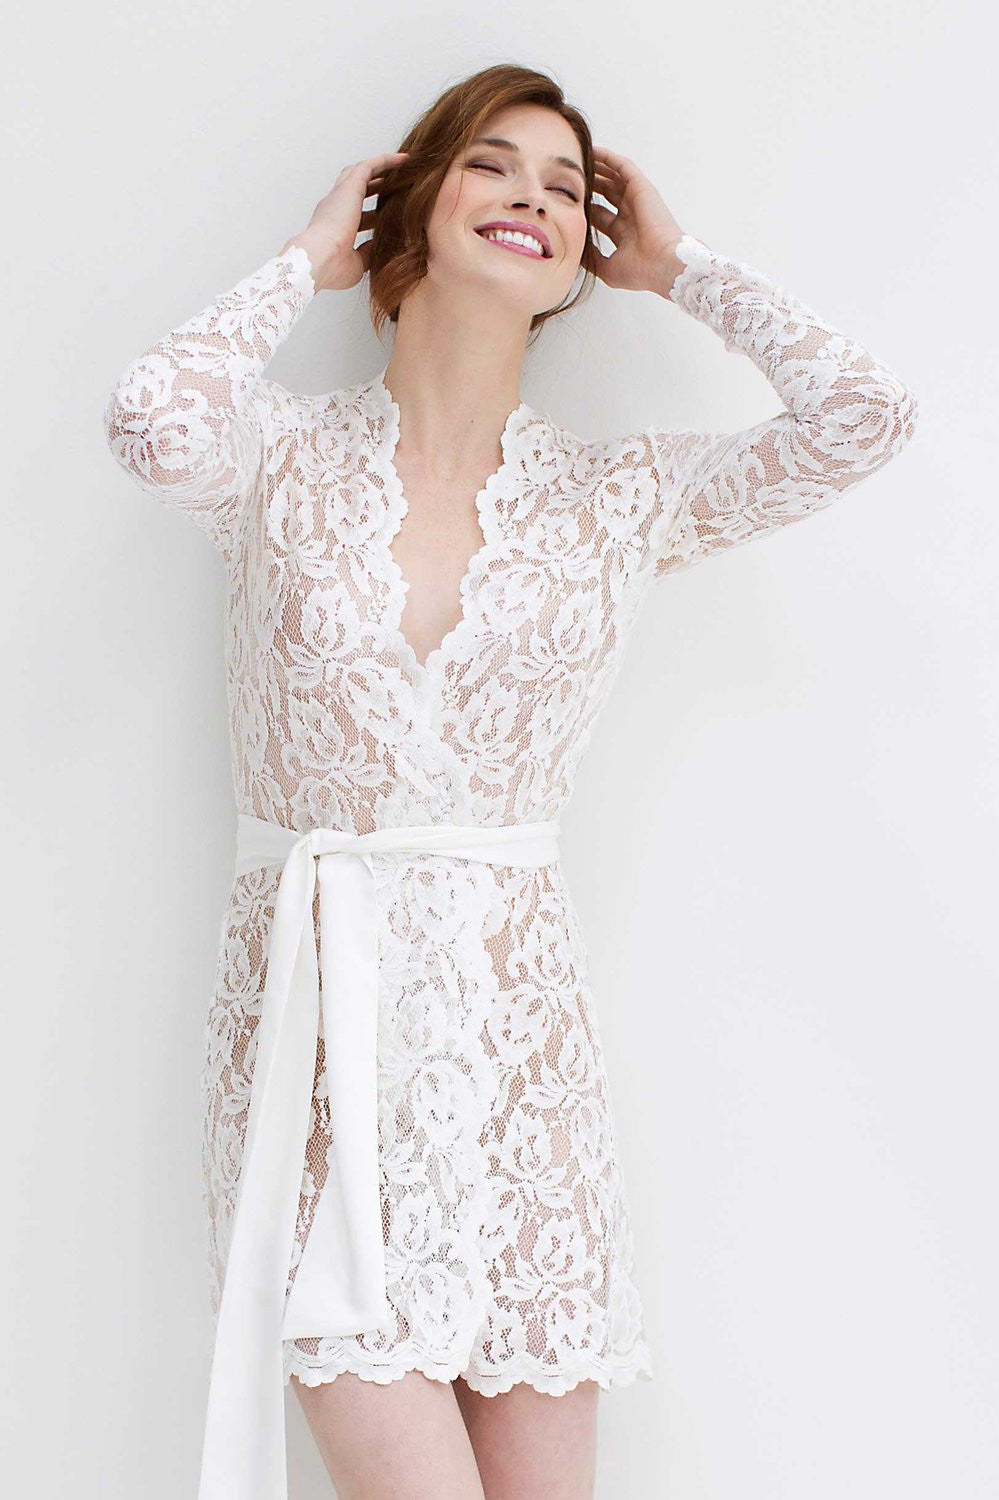 b2f80e09ac Lauren Stretch French Lace Robe in ivory – GirlandaSeriousDream.com